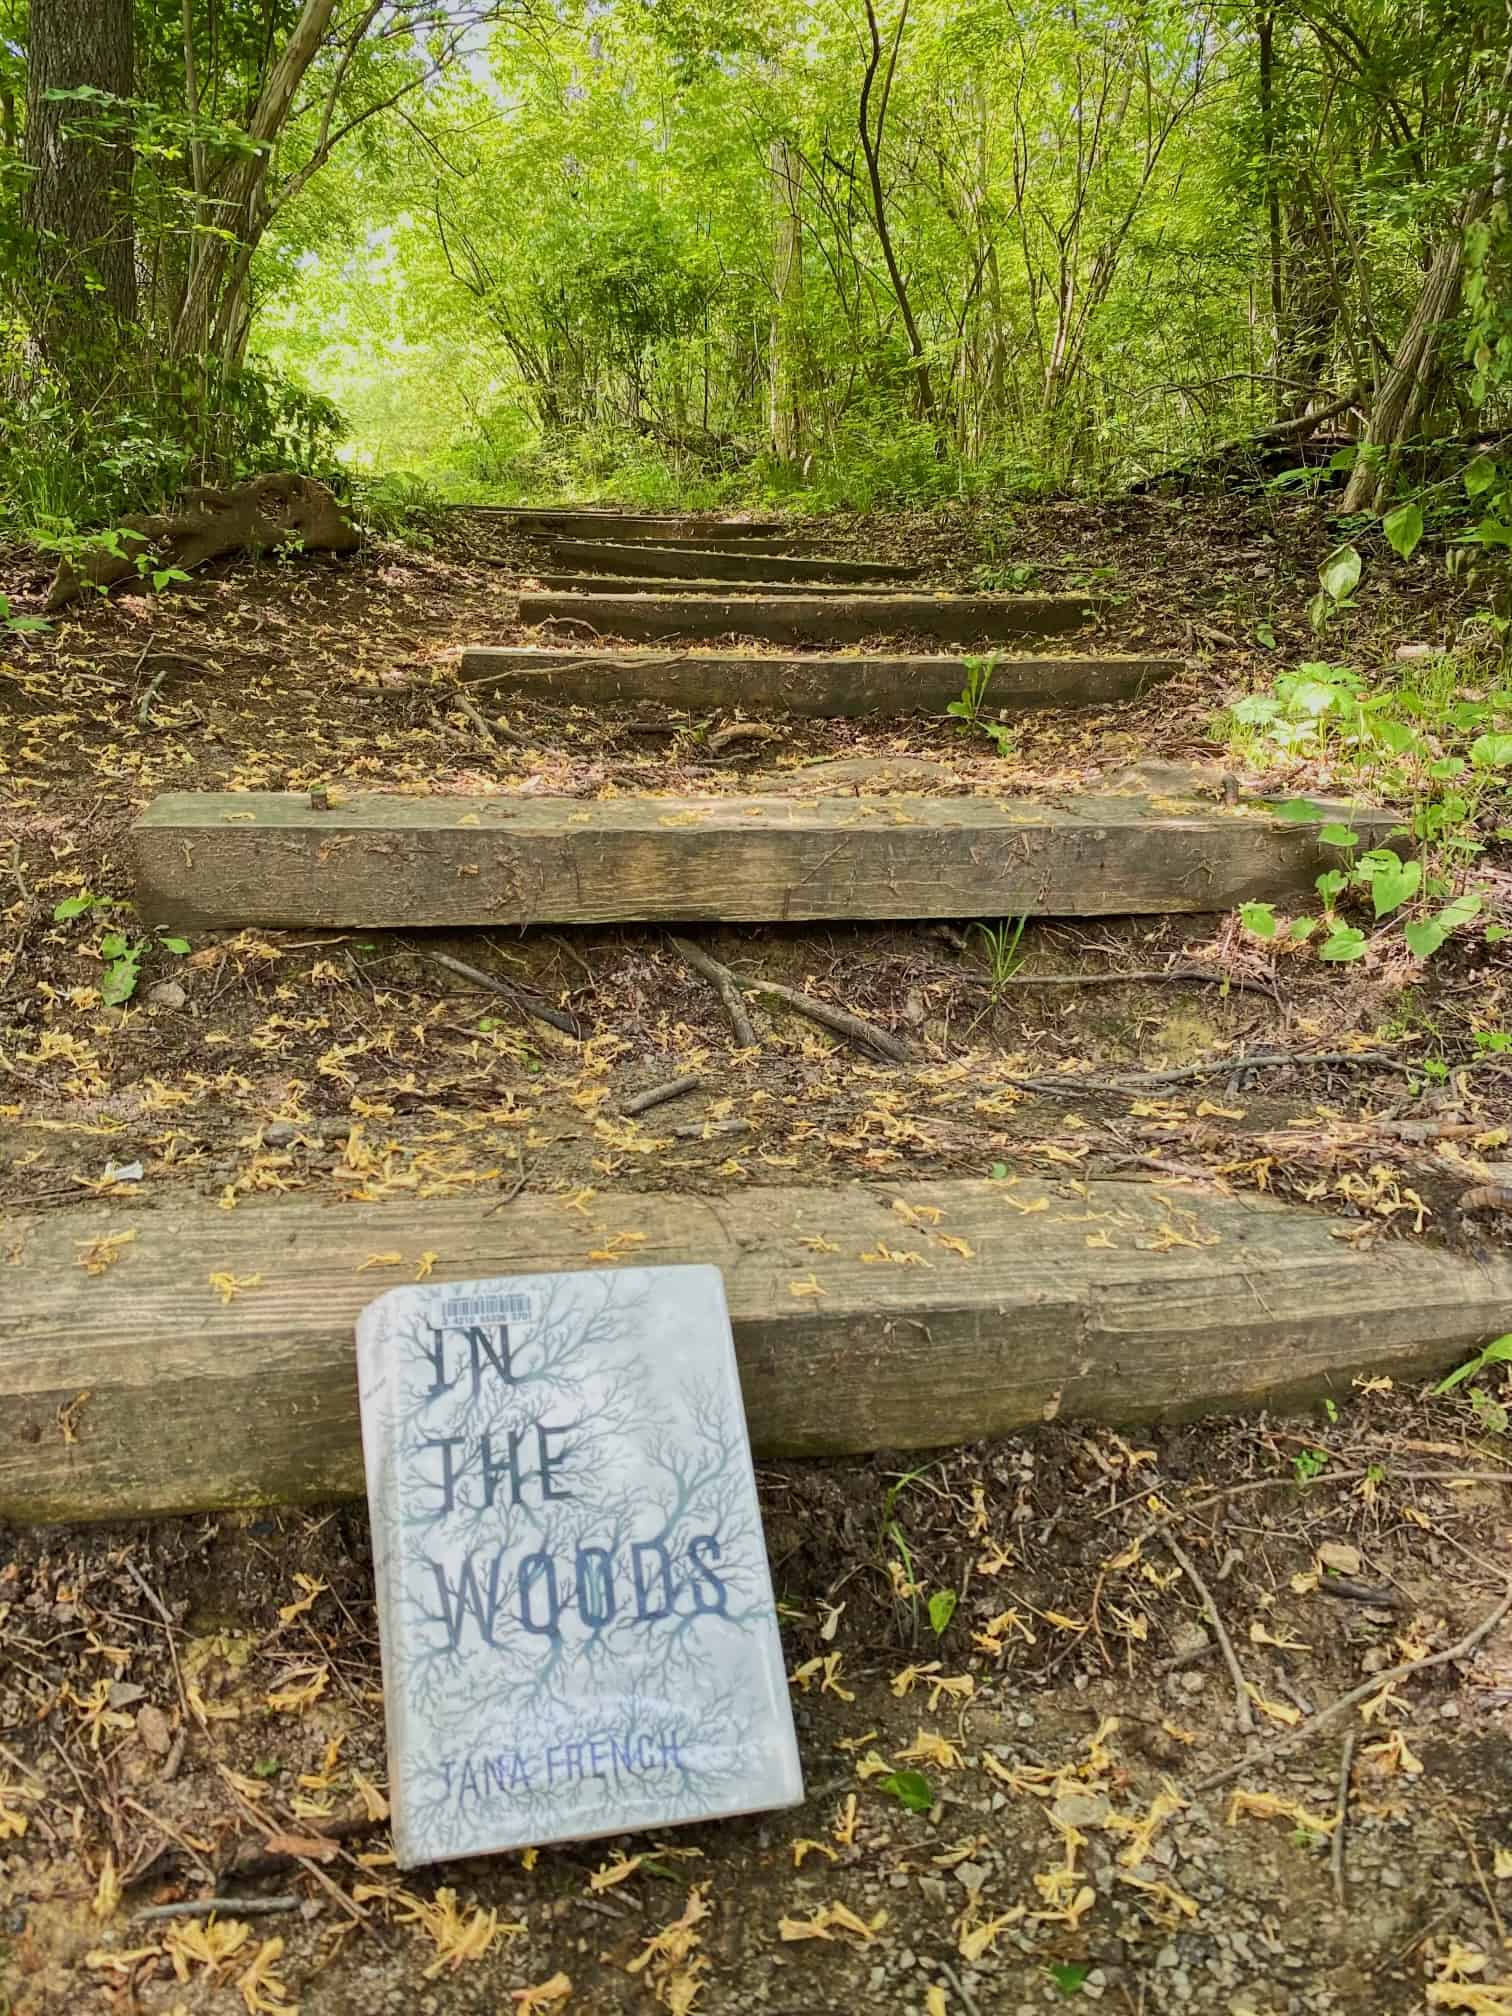 An image for a book review. Photograph of In the Woods by Tana French